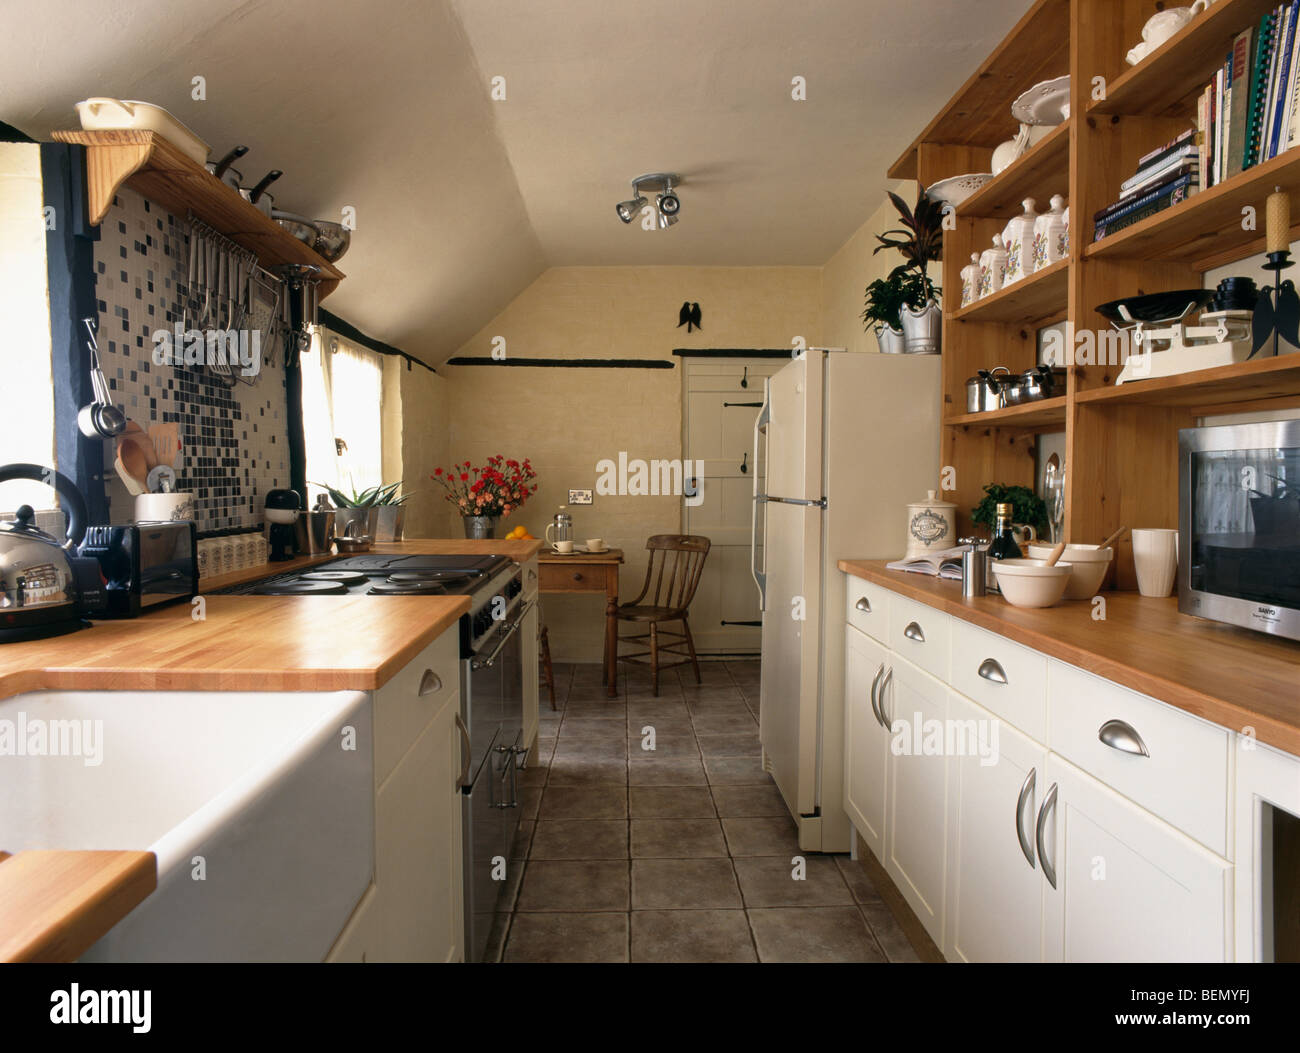 Belfast Sink In Traditional Galley Kitchen With Cream Fitted Units And Open Wooden Shelves And Flagstone Flooring Stock Photo Alamy